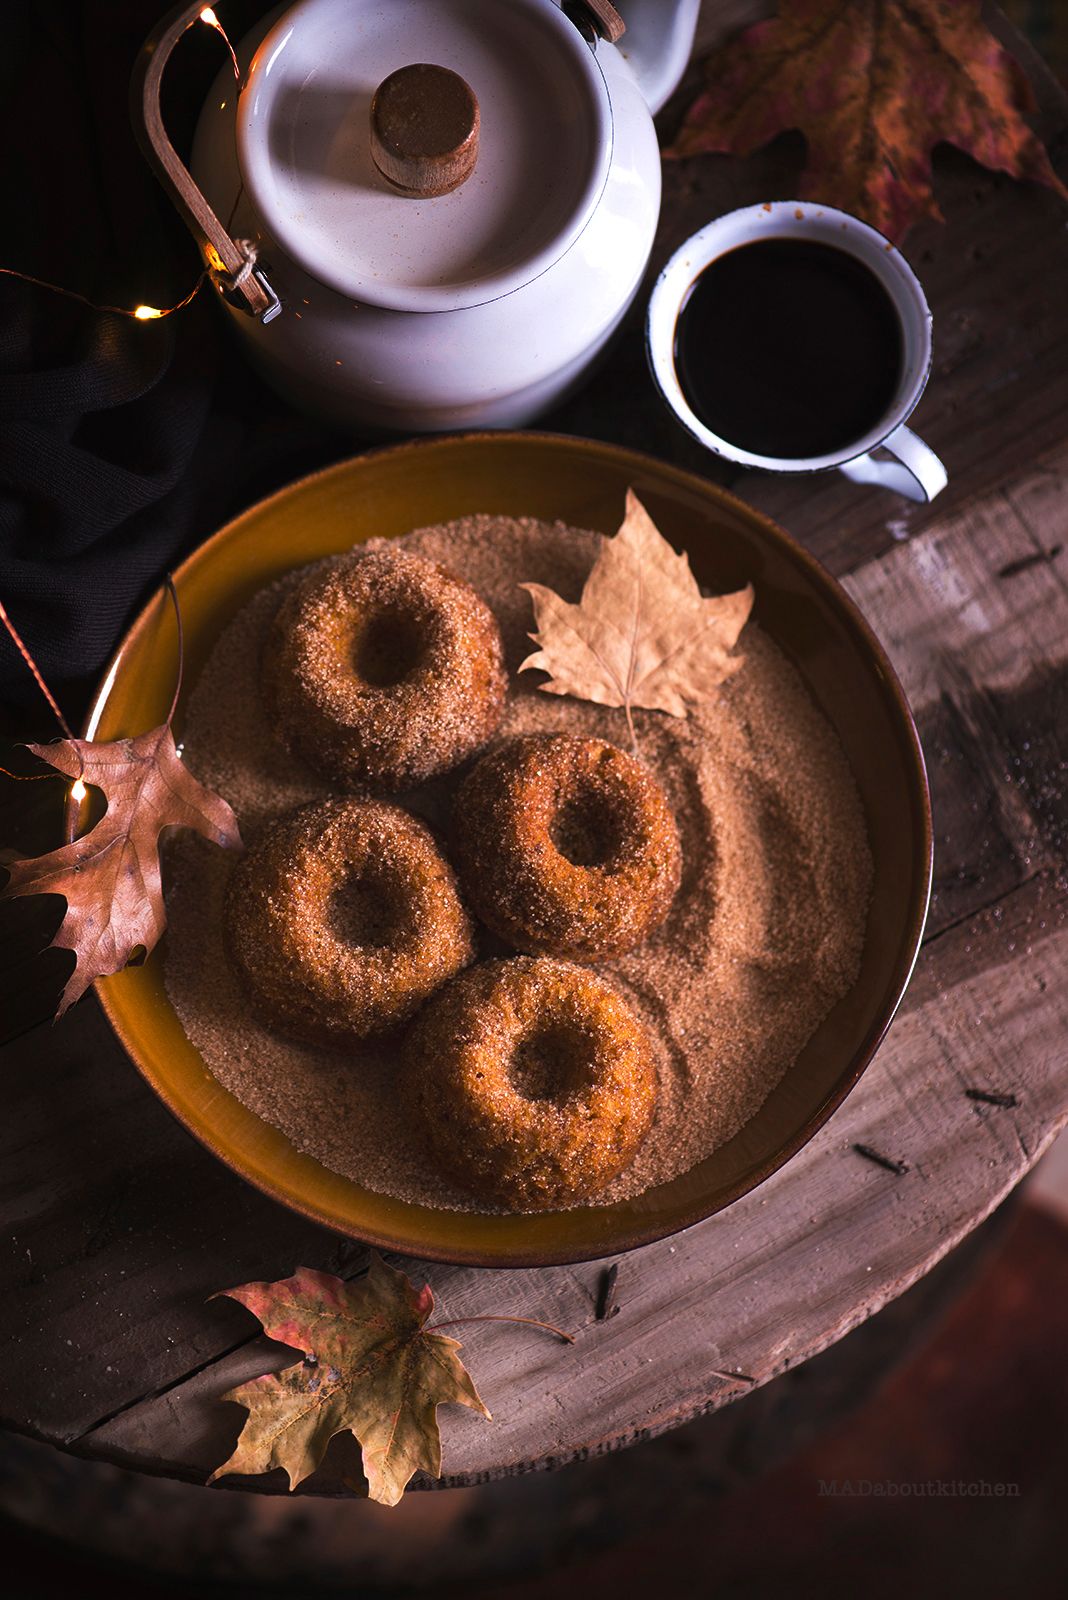 Pumpking Bundt Cakes are these moist, super yum cakes rolled in cinnamon sugar. These are perfect when they are warm and had with some coffee.